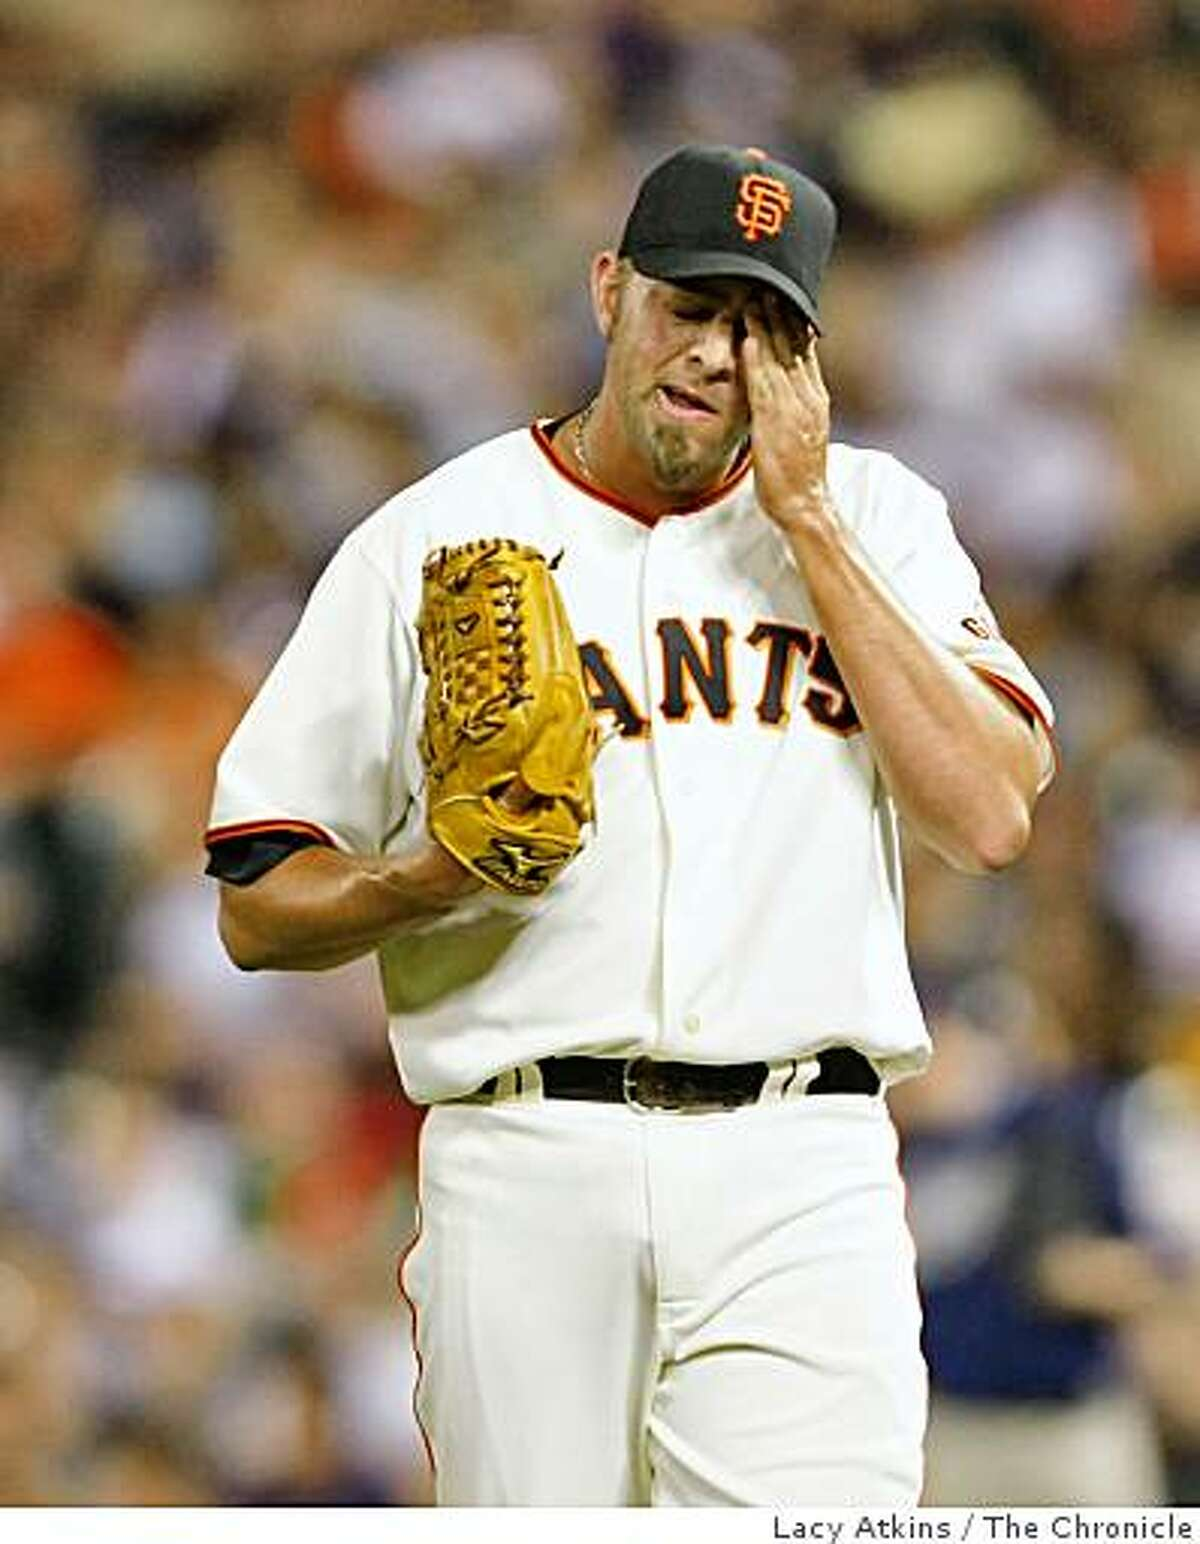 Giants pitcher Jeremy Affeldt wipes his brow as he pitches against the San Diego Padres, Tuesday April 21, 2009, in San Francisco, Calif.